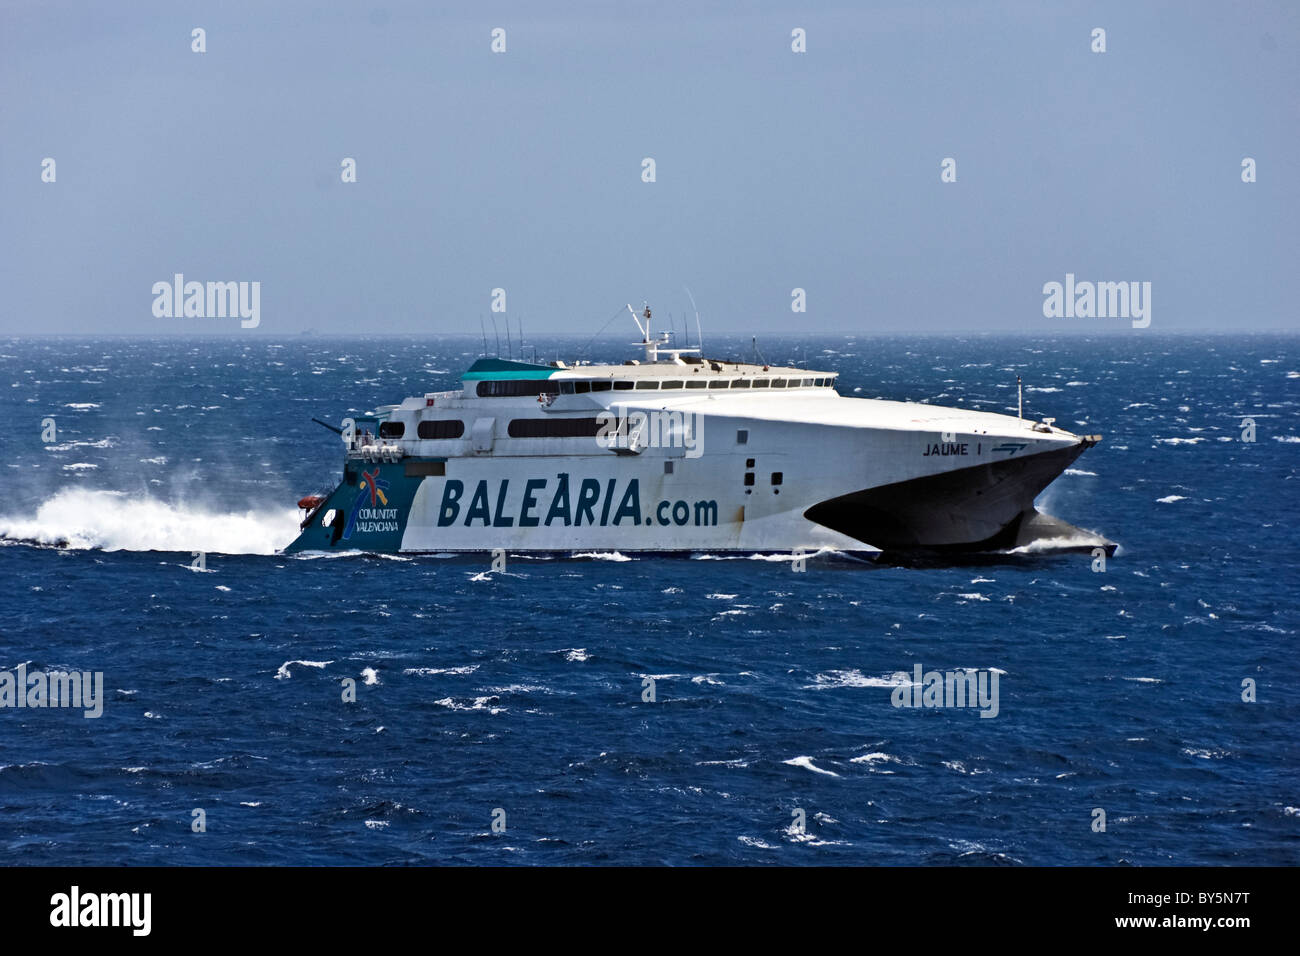 Balearia InCat catamaran ferry Jaume 1 is seen here off Gibraltar between Algeciras and Tangier - Stock Image